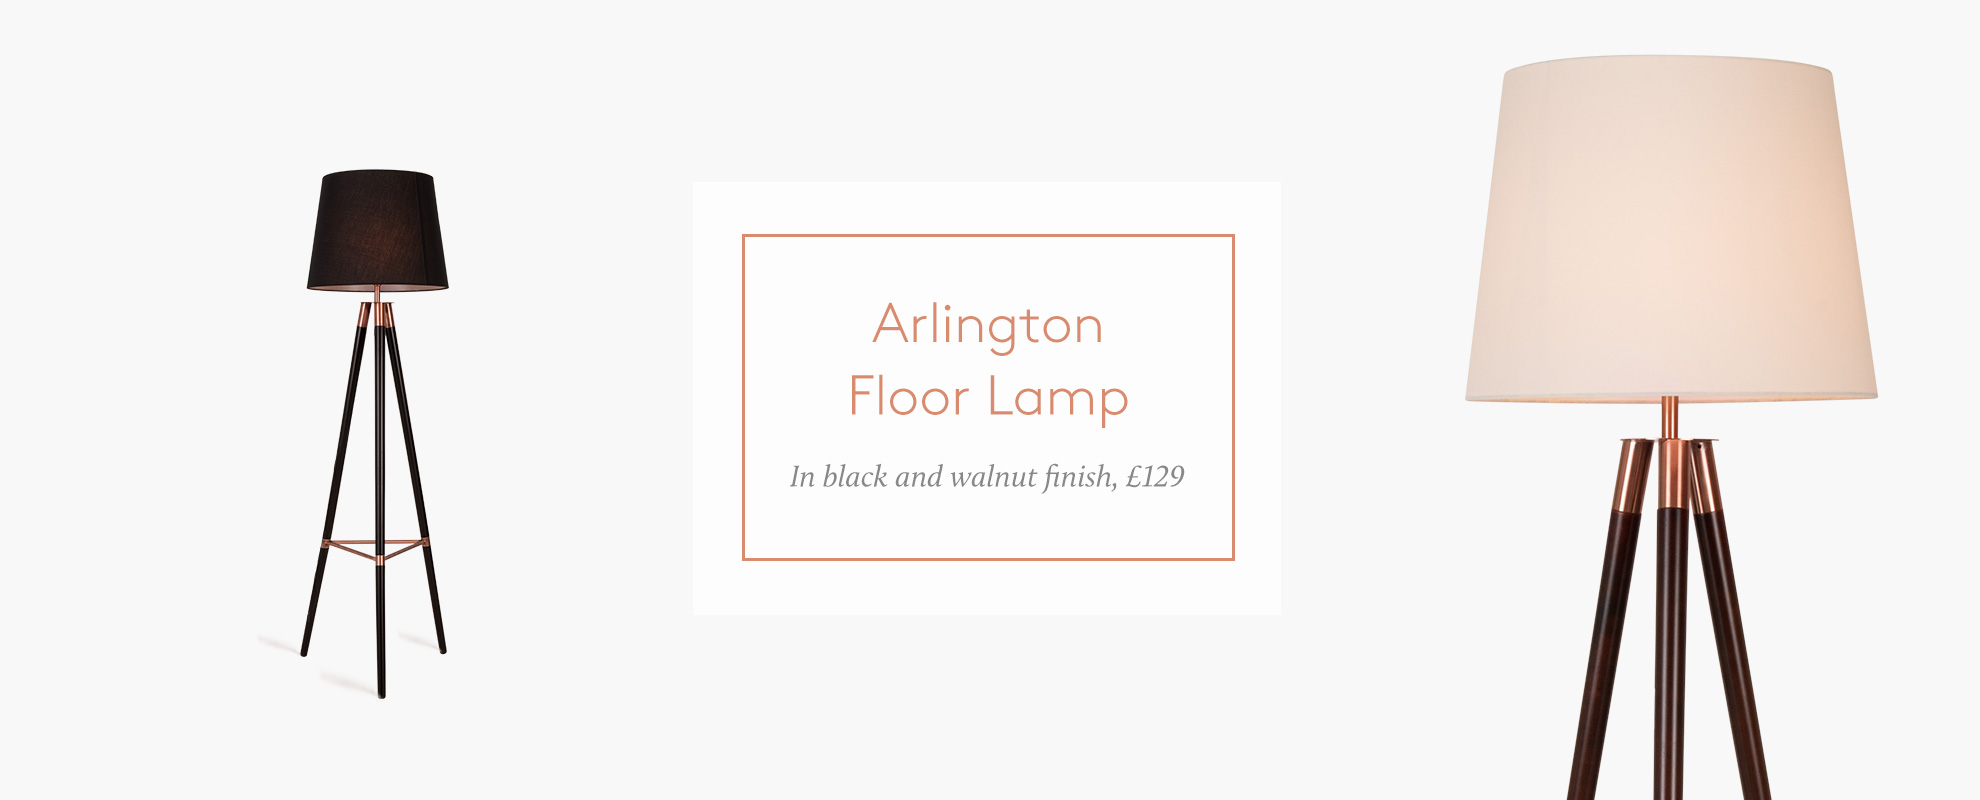 Arlington Floor Lamp